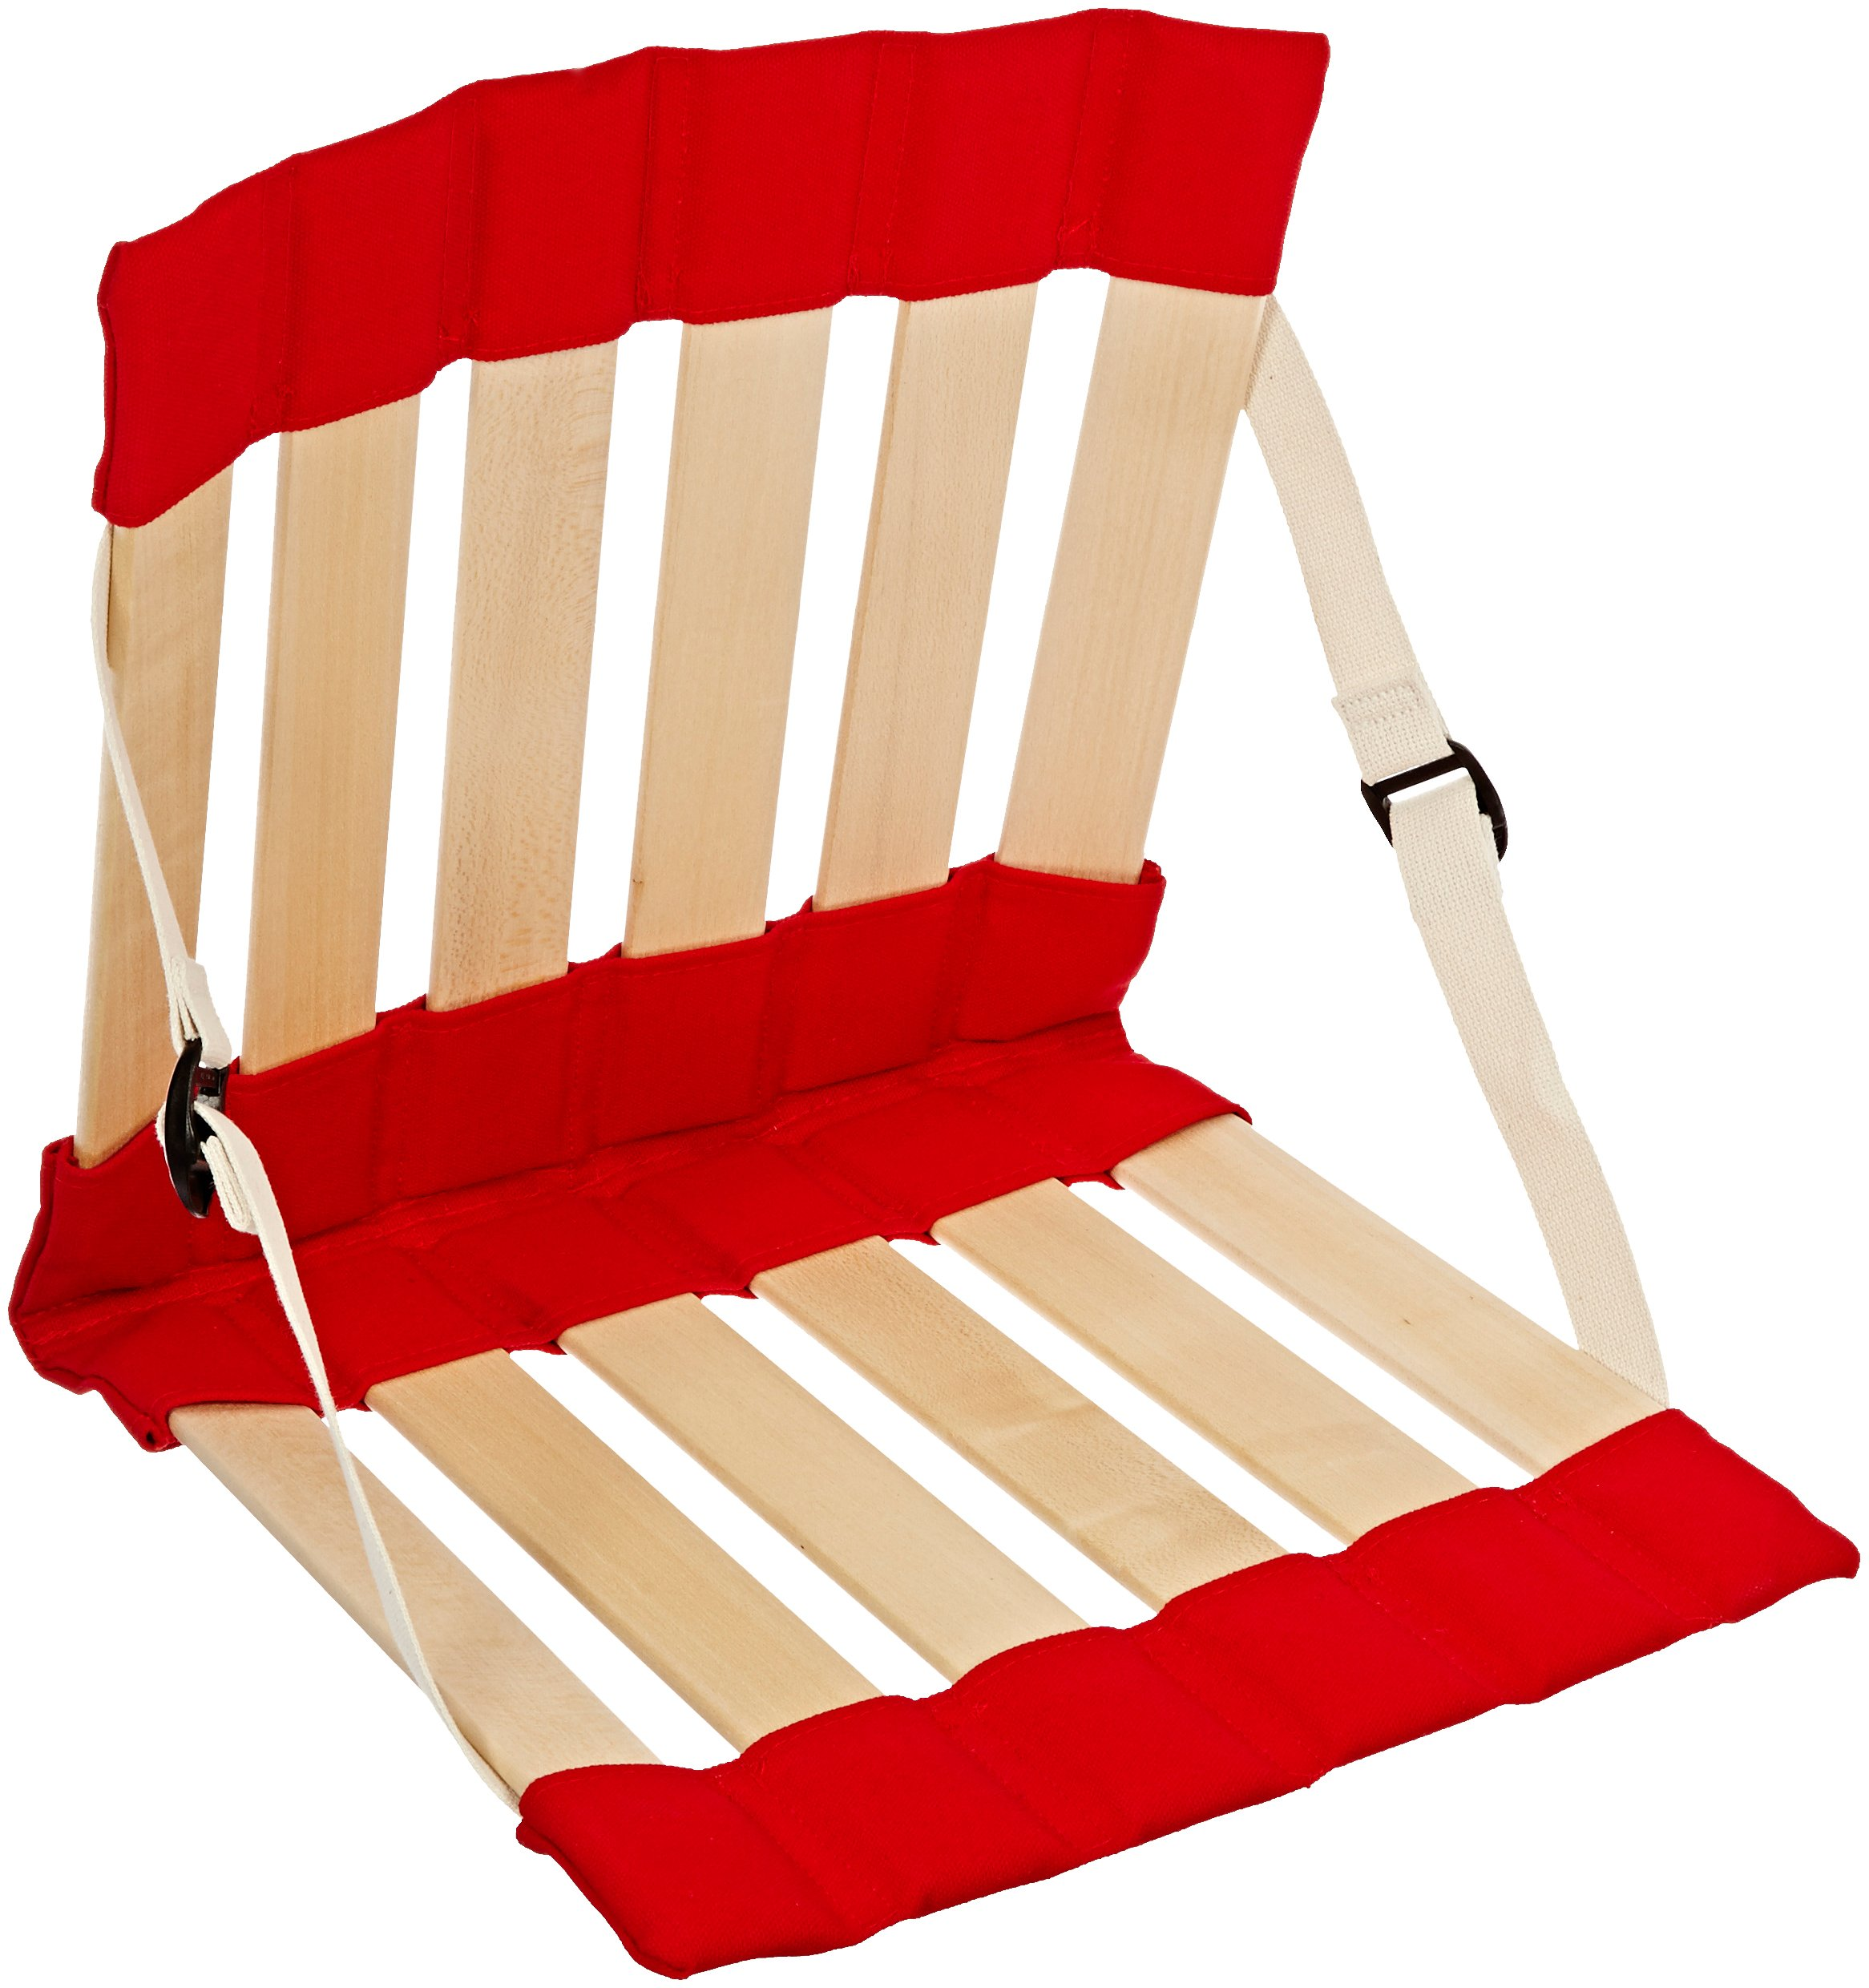 HowdaHug Petite Hug Roll Up Seat - Fits 3 to 5 Years Up To 40 pounds - Multiple Colors by Howda Hug